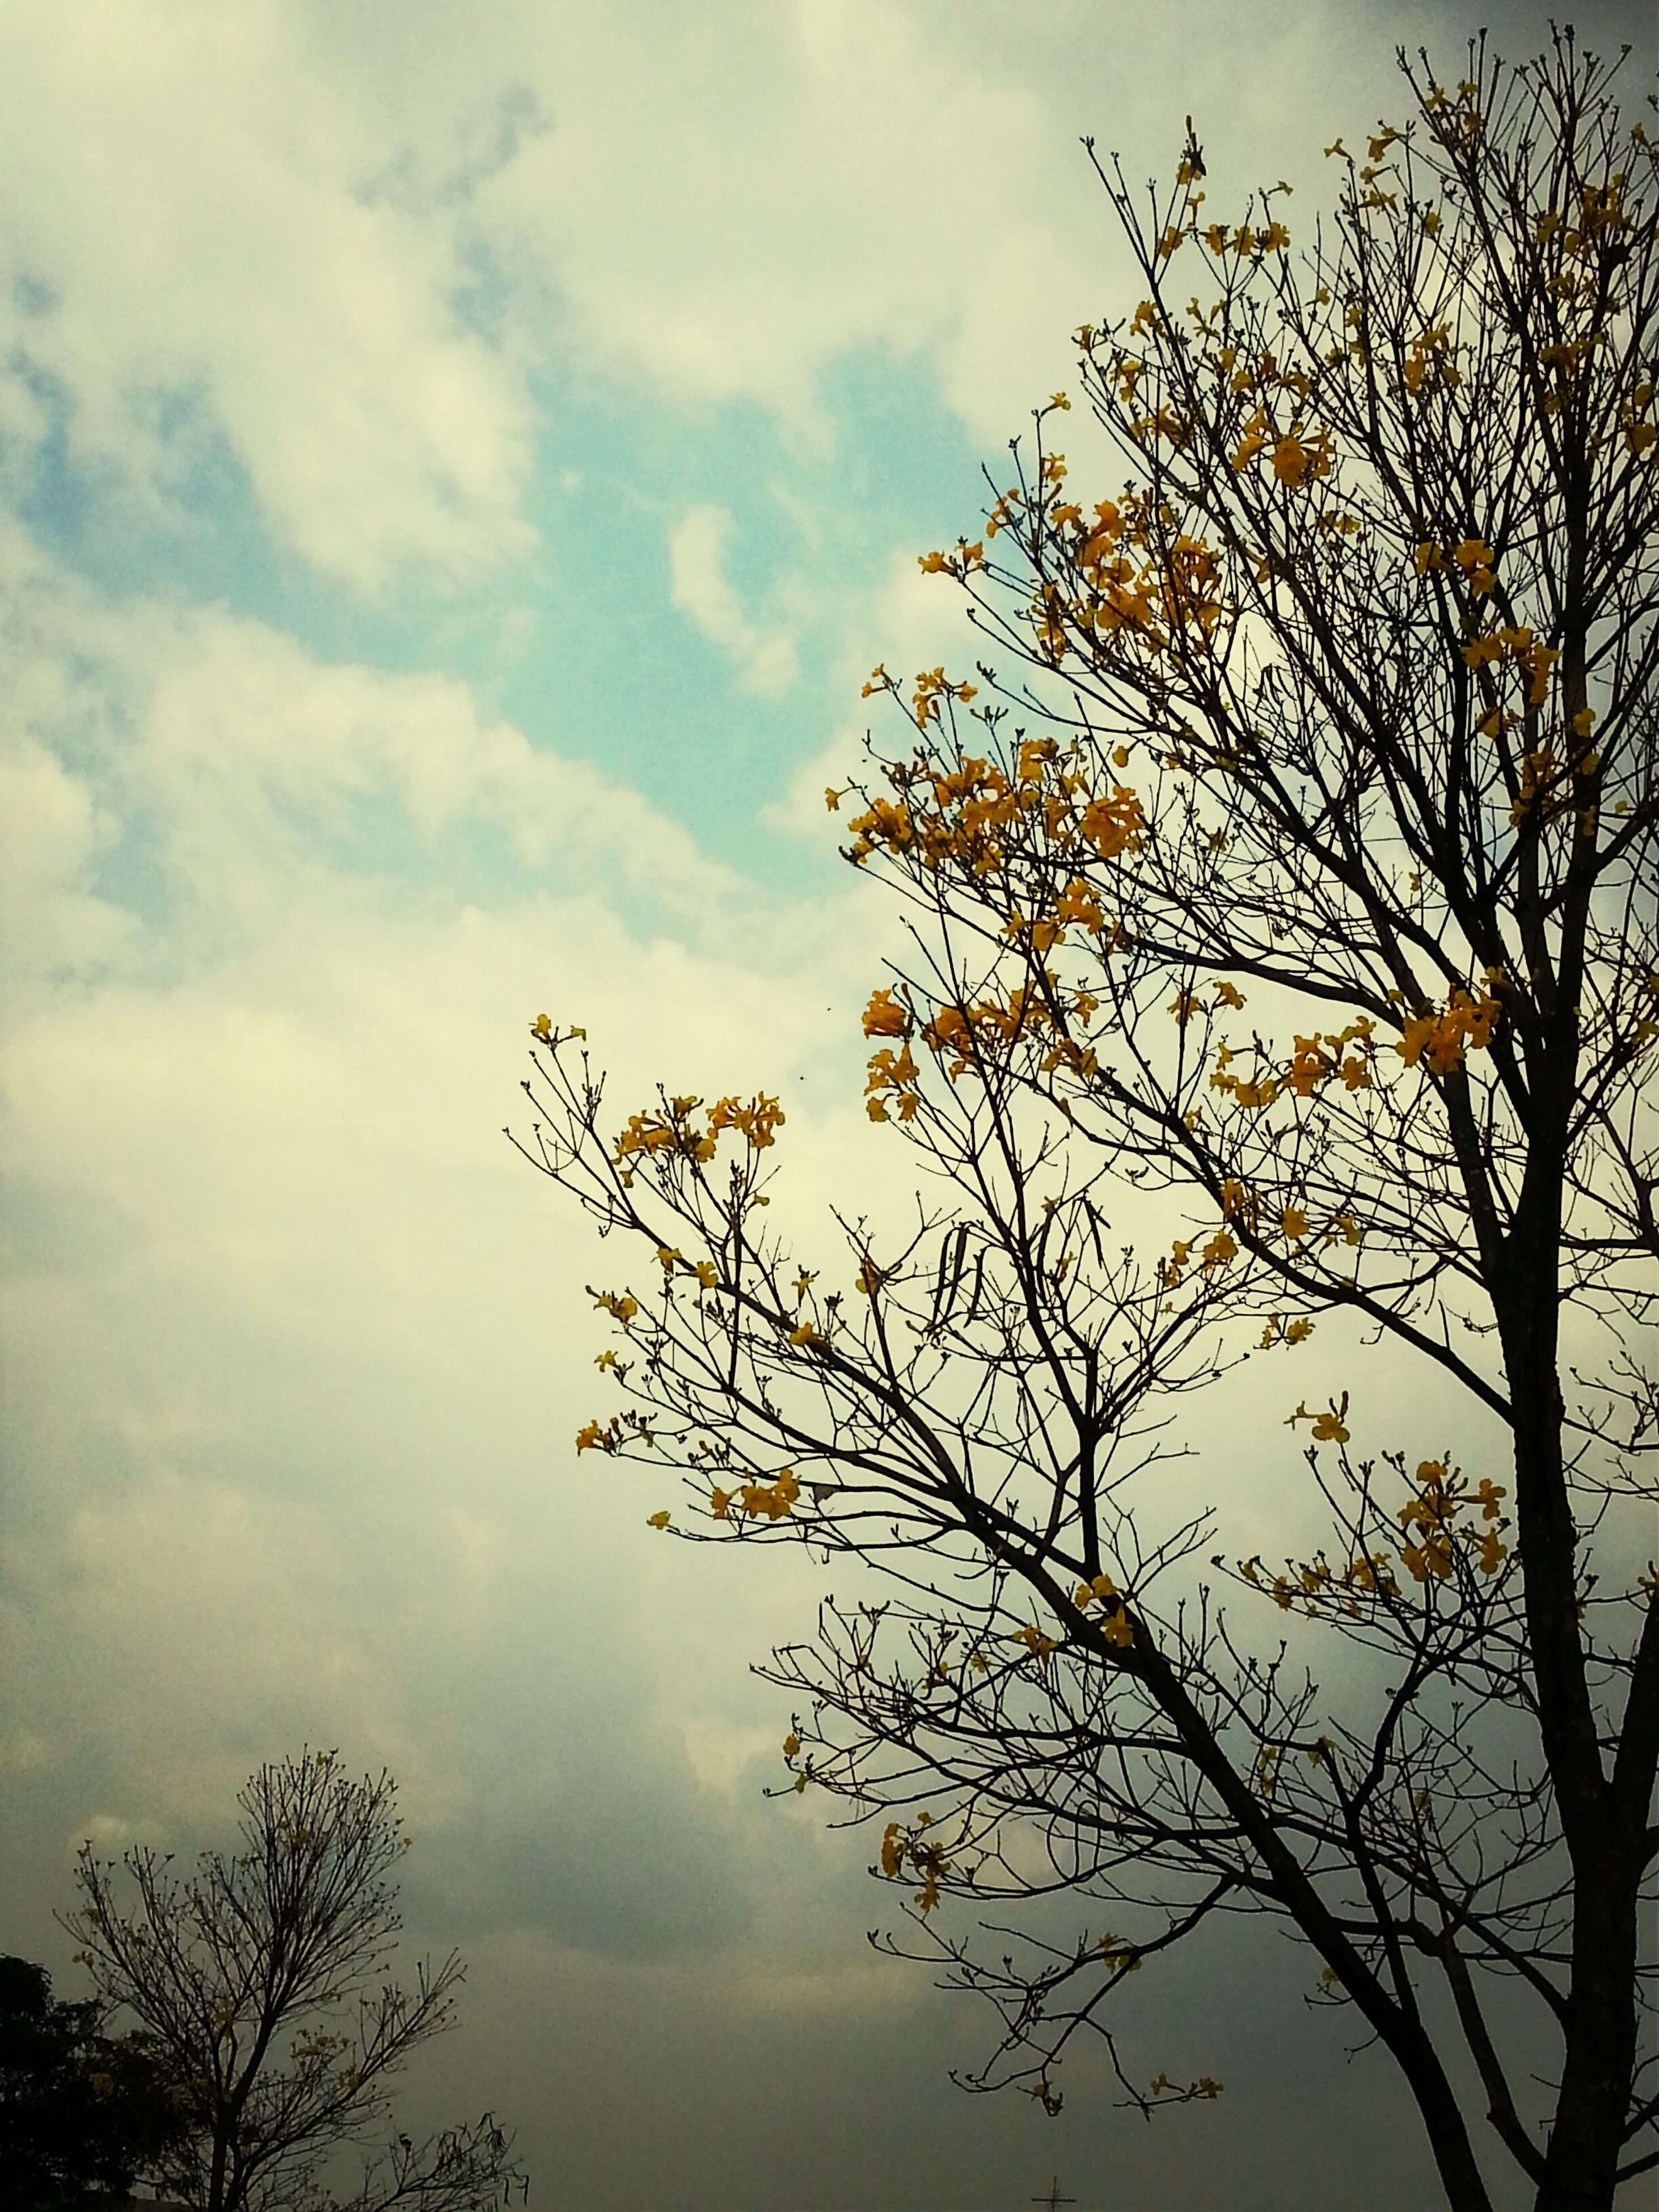 low angle view, sky, branch, tree, nature, cloud - sky, silhouette, growth, bare tree, beauty in nature, tranquility, cloud, twig, cloudy, leaf, scenics, outdoors, no people, dusk, day